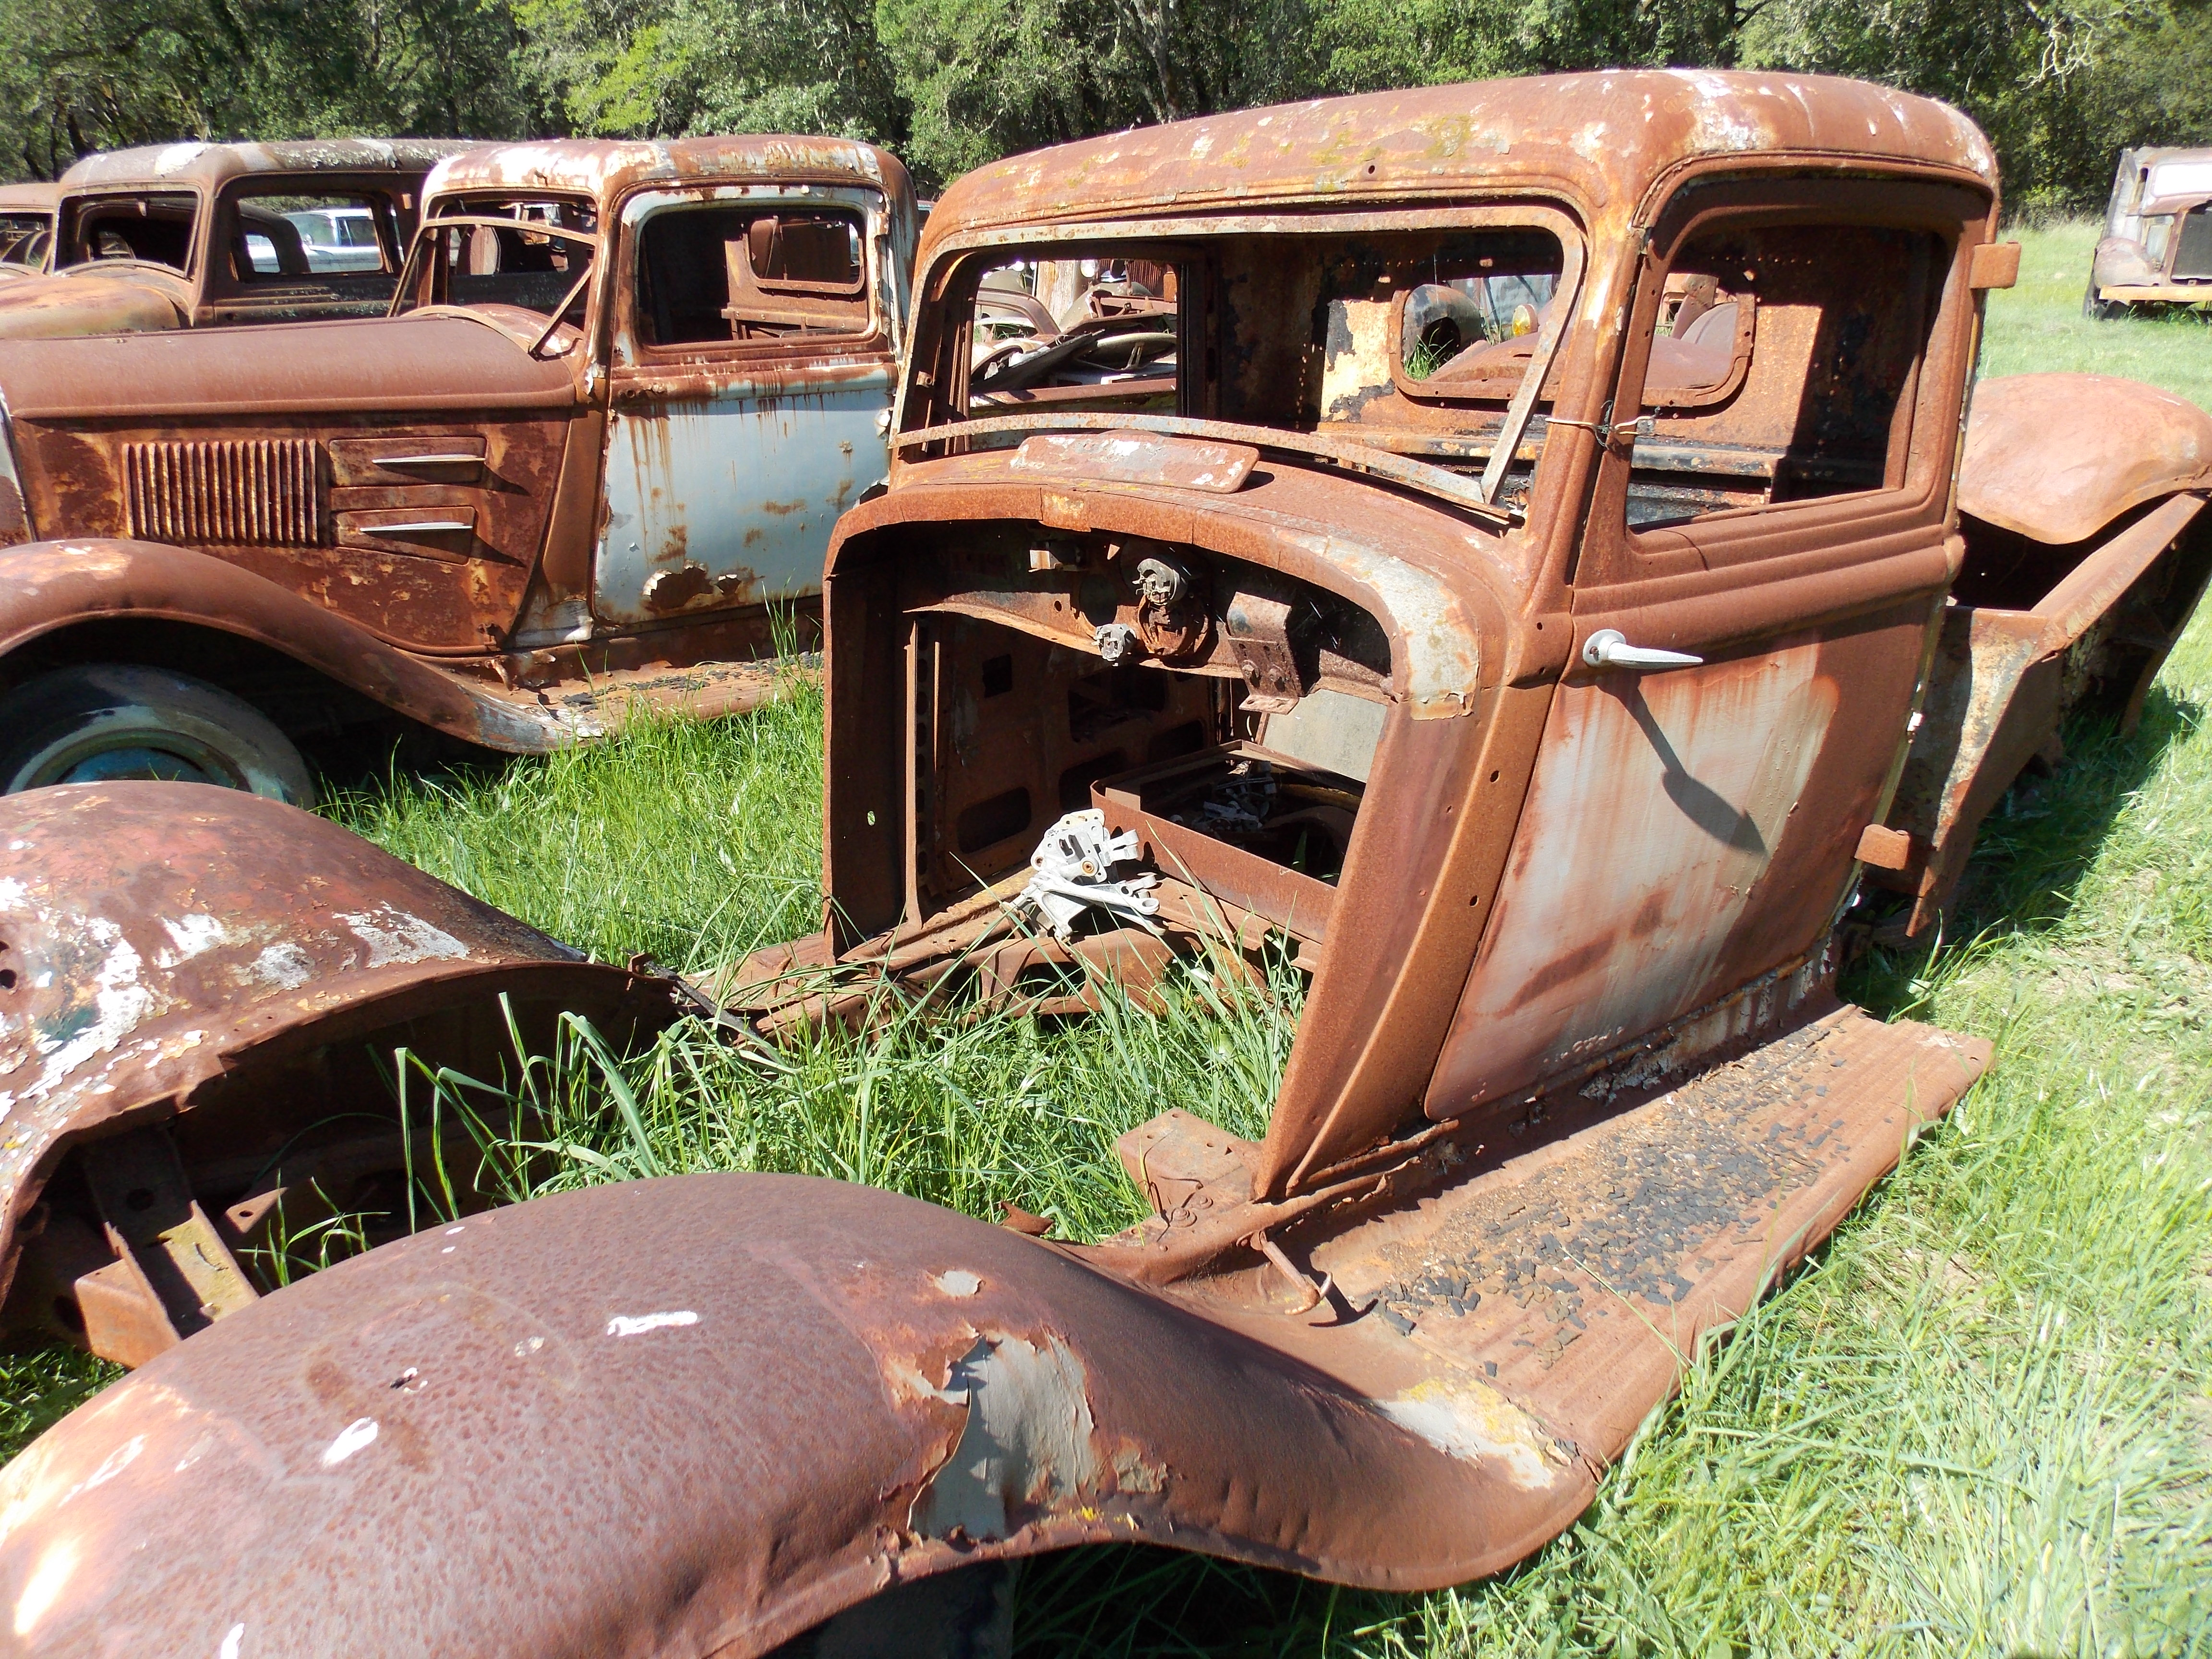 Classic Car Graveyard Where Cars Go To Rest In Peace Vintage